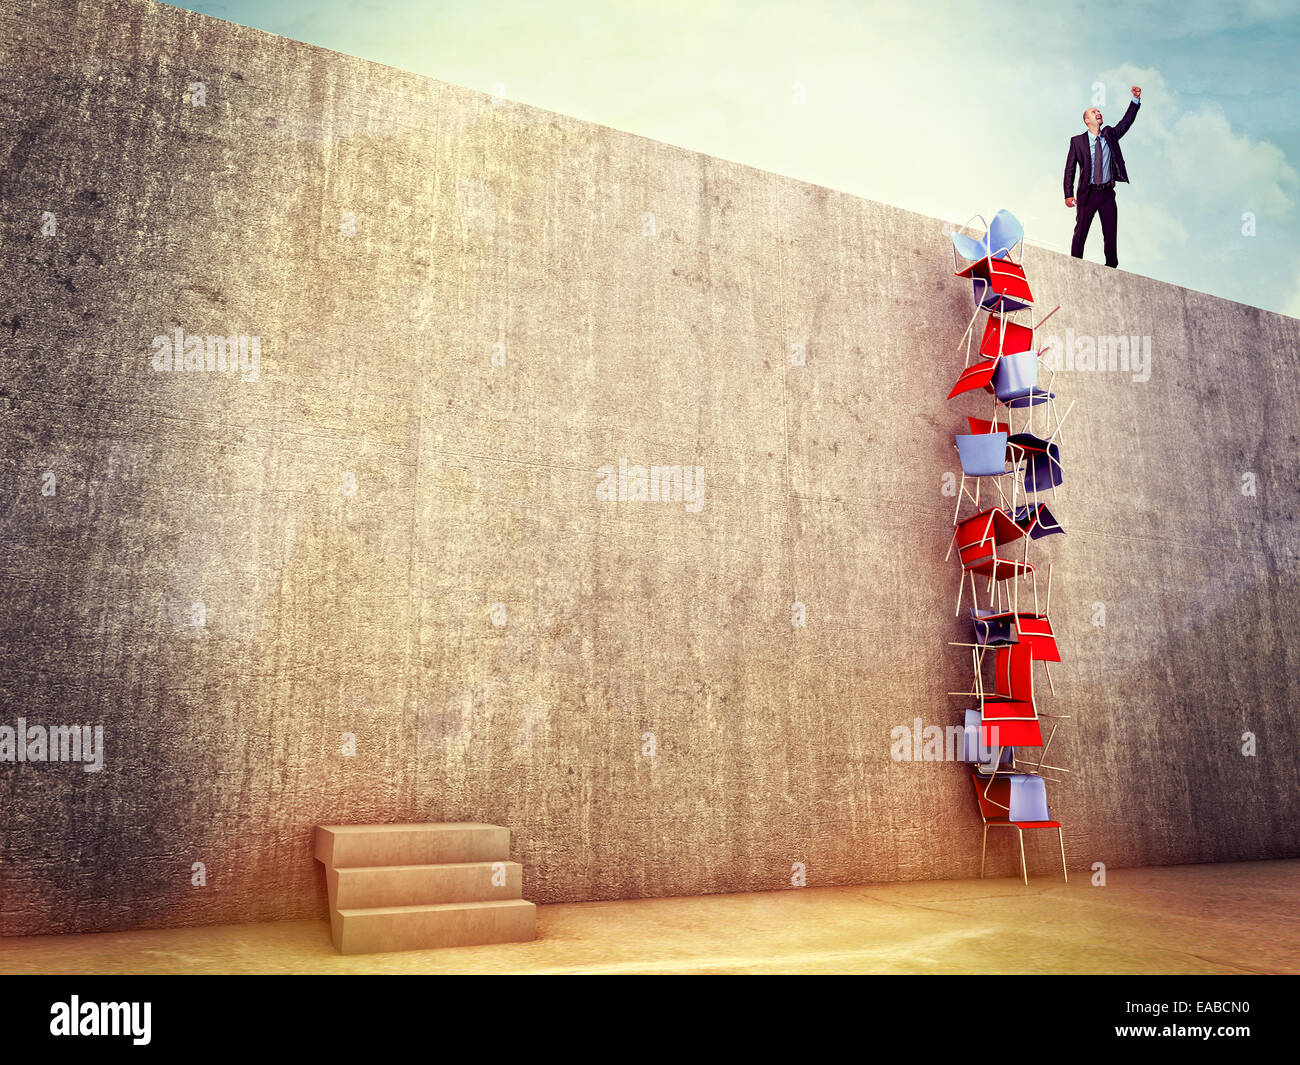 clever man try solution to climb the wall - Stock Image